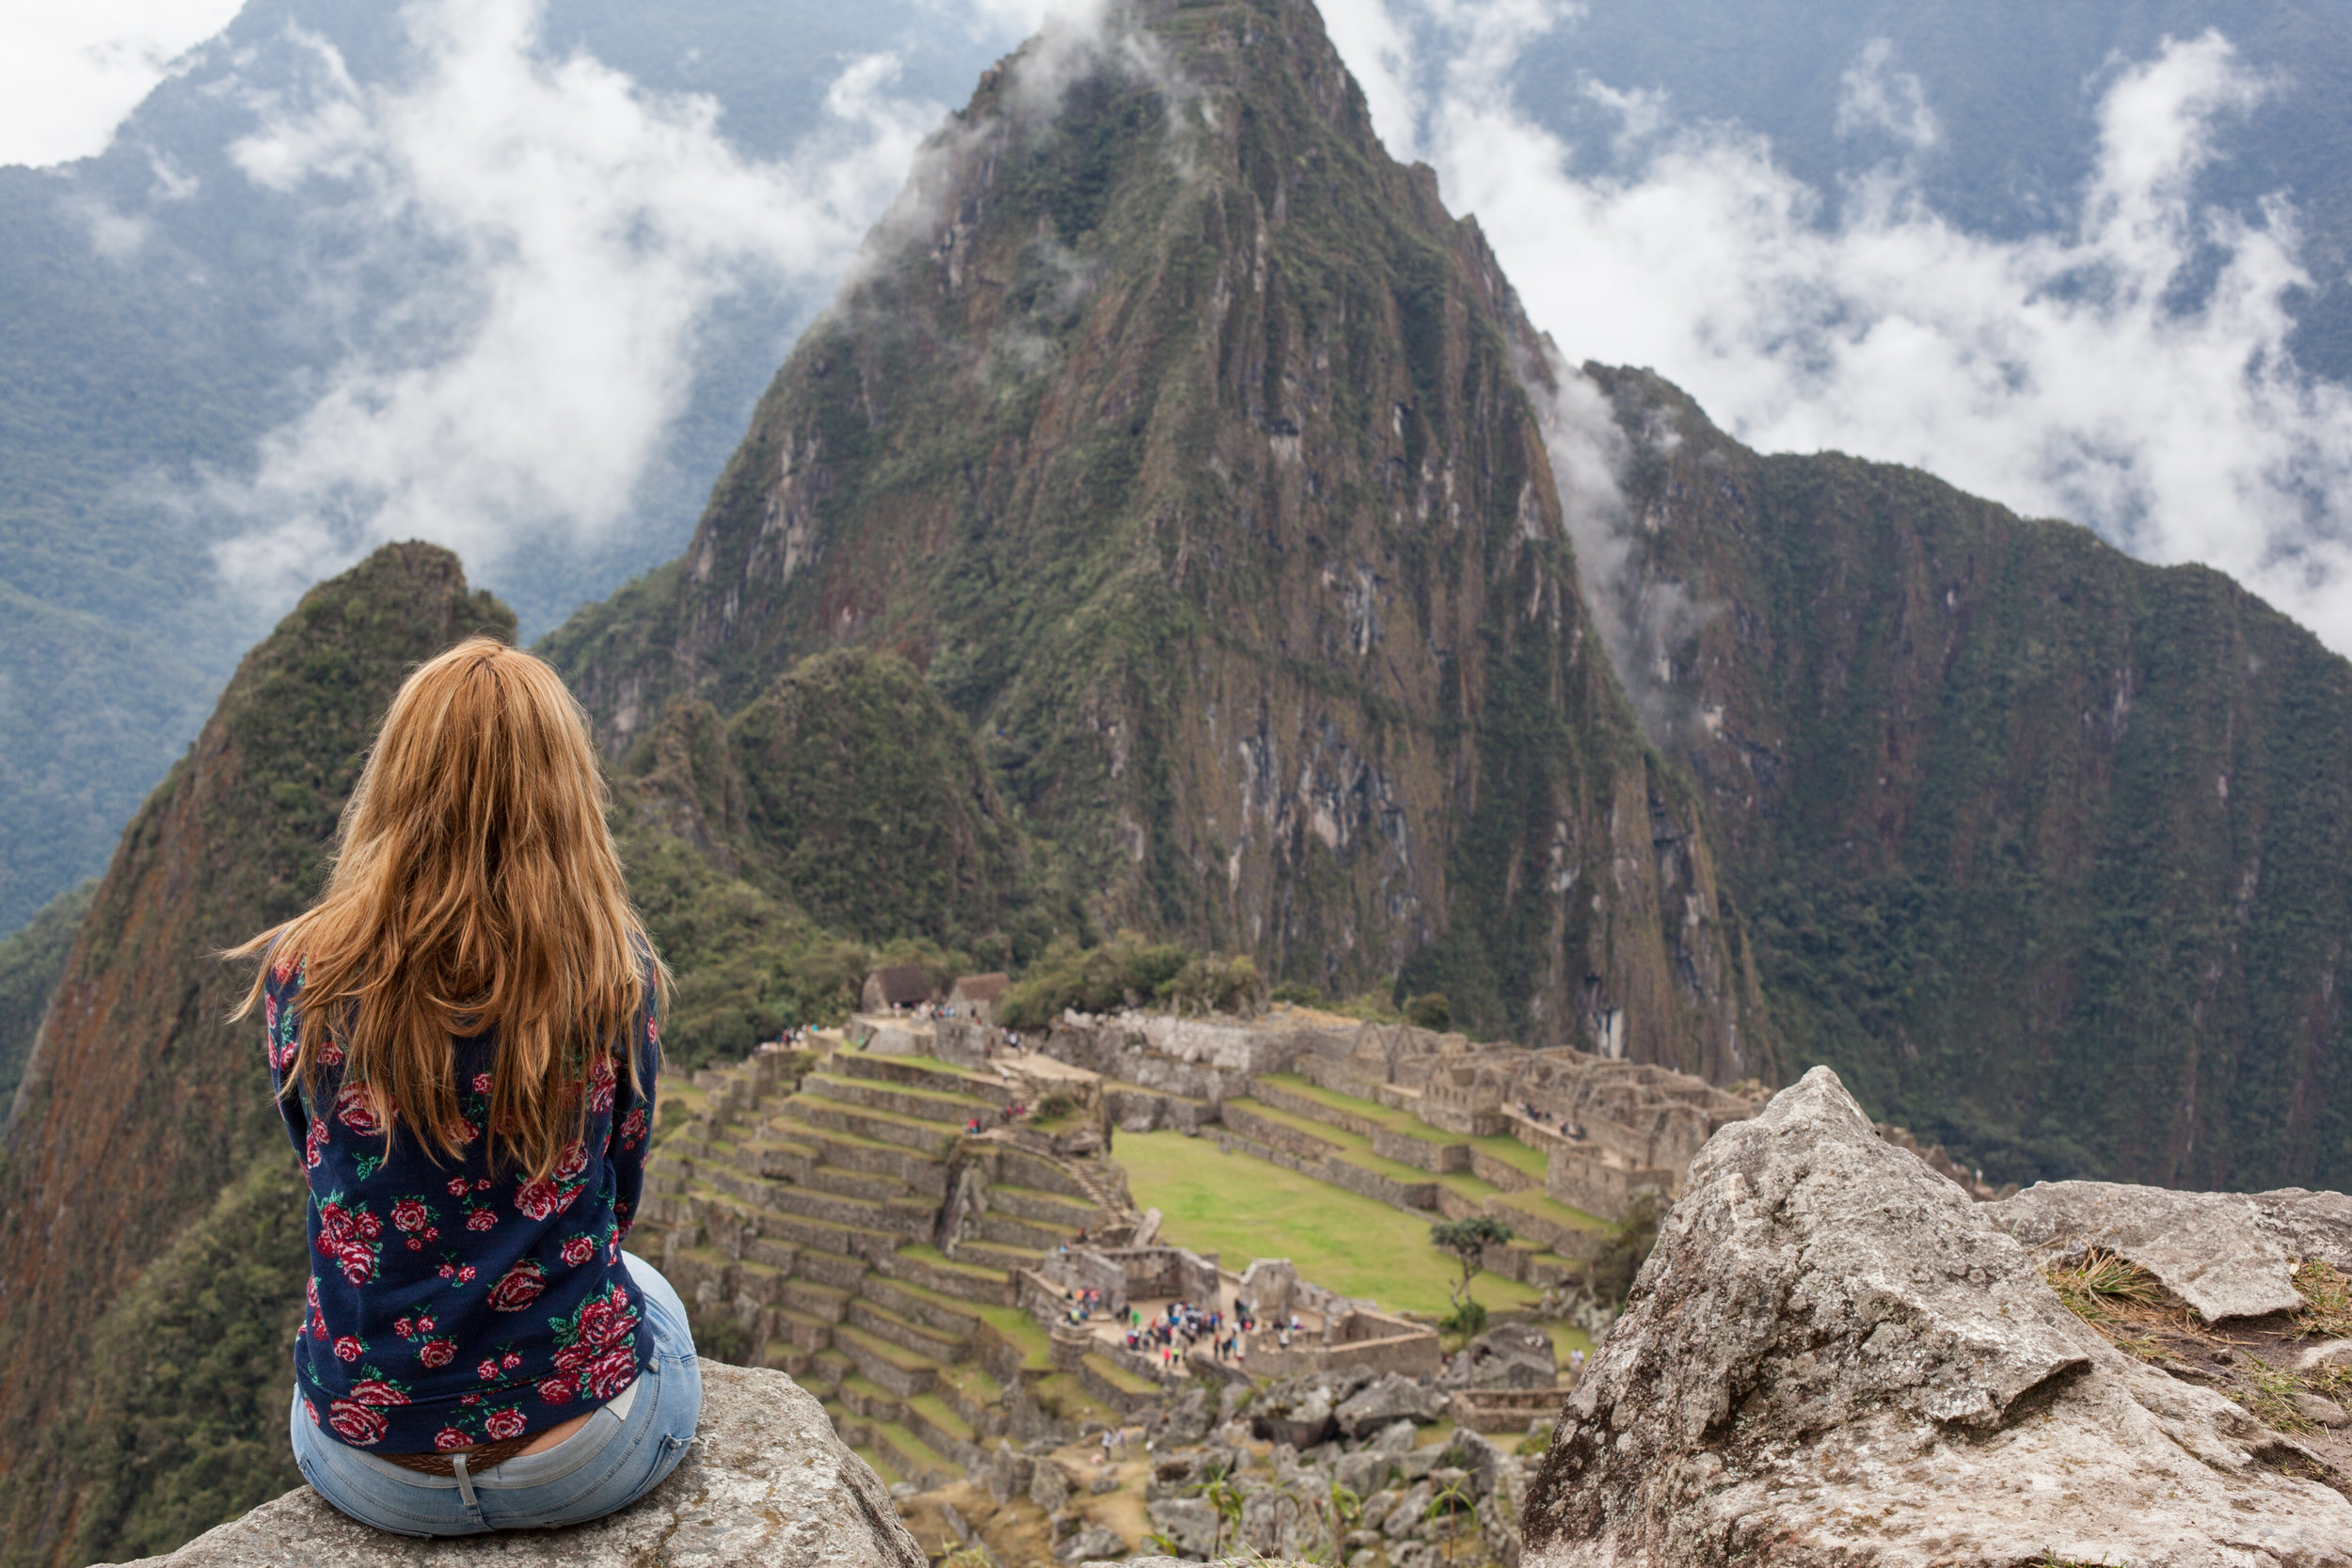 A solo female traveller enjoying Machu Picchu.